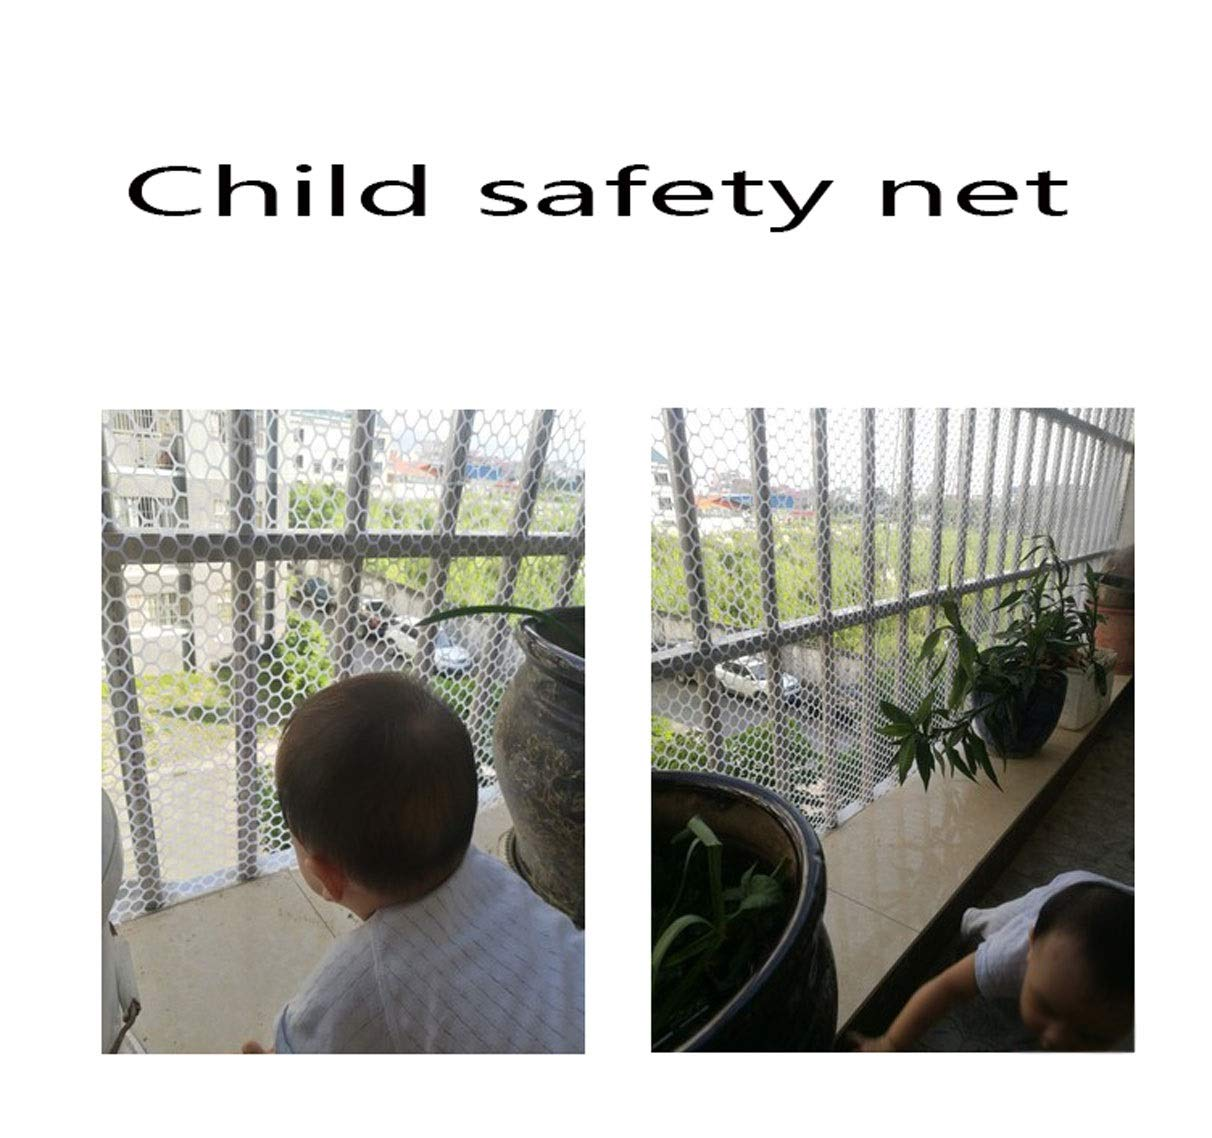 Plastic Garden Net Mesh Barrier Safety Fence Netting Balcony Stairs Safety Fence Chicken Net Cat Net Plant Support Fence (Size : 2 * 50m) NNFHW ♦ Plastic safety mesh with a diameter of 1.8cm prevents children's head and body from falling through the railing and prevents toys and shoes from falling from the gap between the armrests. It can even be used as a pet safety door. Provide a safe gaming environment for children. ♦ Lawn protective grilles are used to reinforce large areas of flat surfaces, especially parks and lawn areas, slopes and embankments. The turf grid increases the load-bearing capacity of the soil. Effectively prevents the formation of ruts. Suitable for short-term parking, driveways, etc. ♦ Plastic flat net waterproof, wear-resistant, tough, light weight, long service life, non-toxic and tasteless, high transparency. Ideal for interior and exterior of residential buildings such as railings, stairs, cots, hallways, balconies, etc. The honeycomb design does not interfere with your view. 5